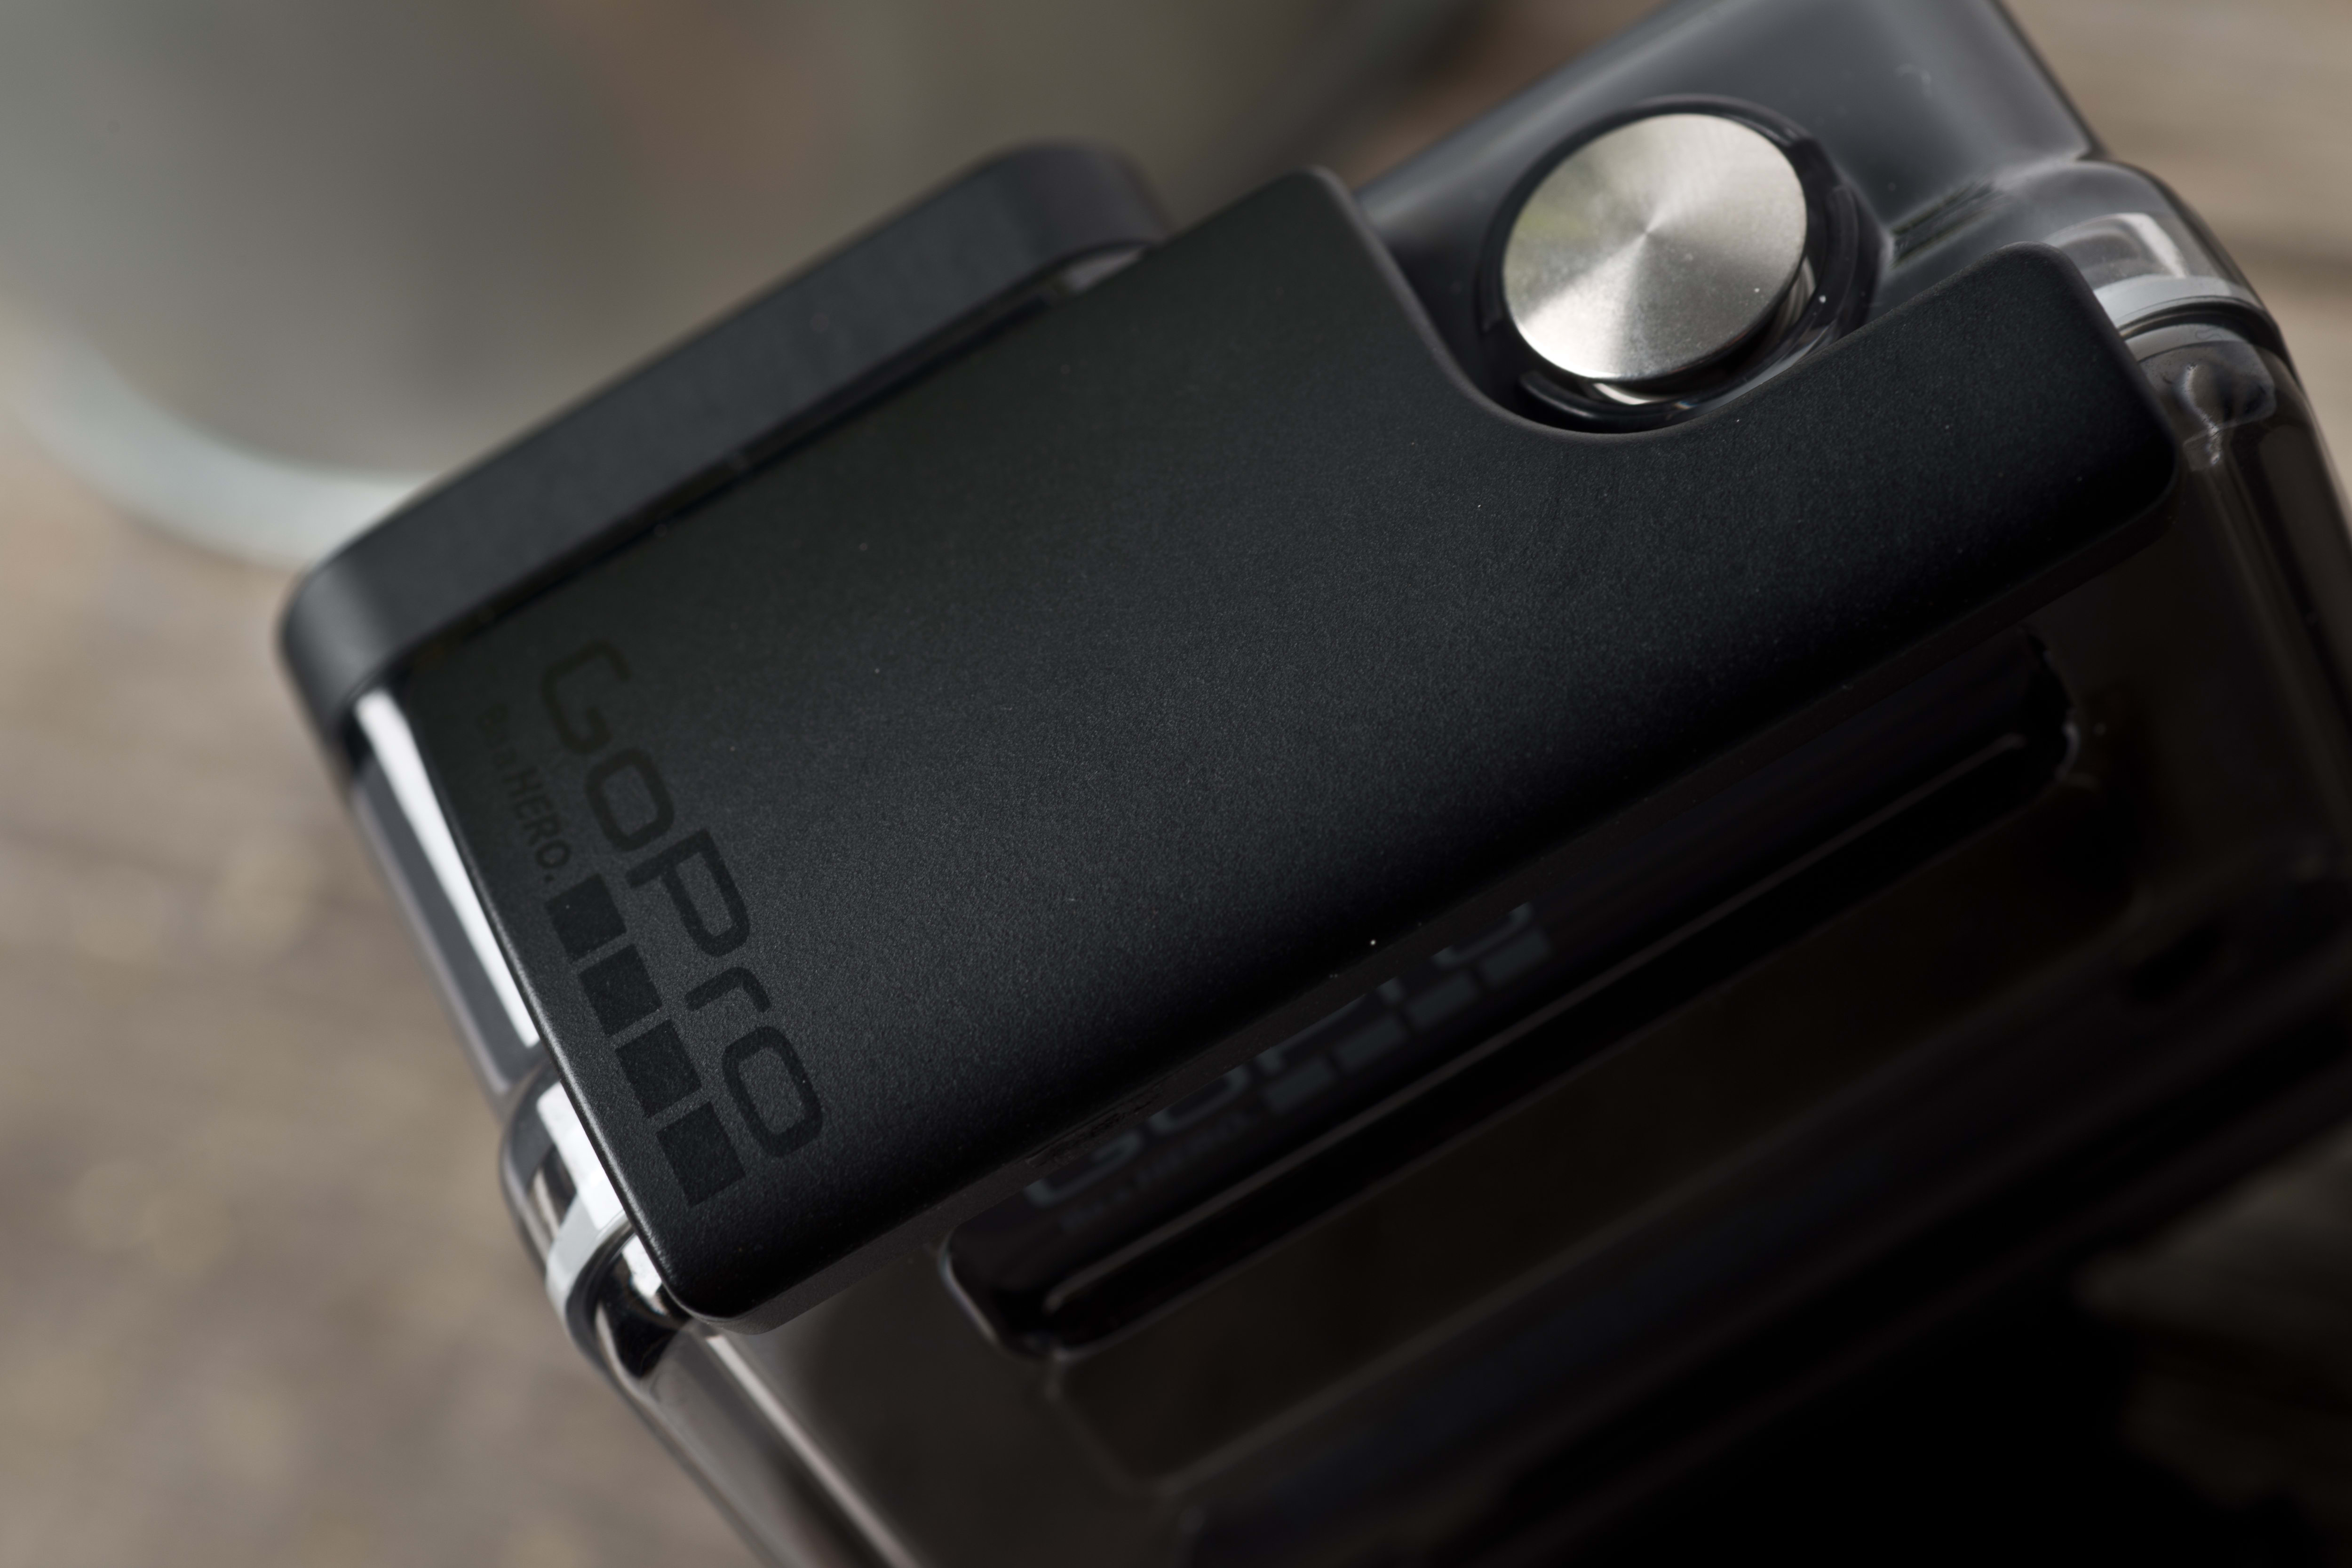 A photograph of the GoPro Hero 2014 edition's latch.